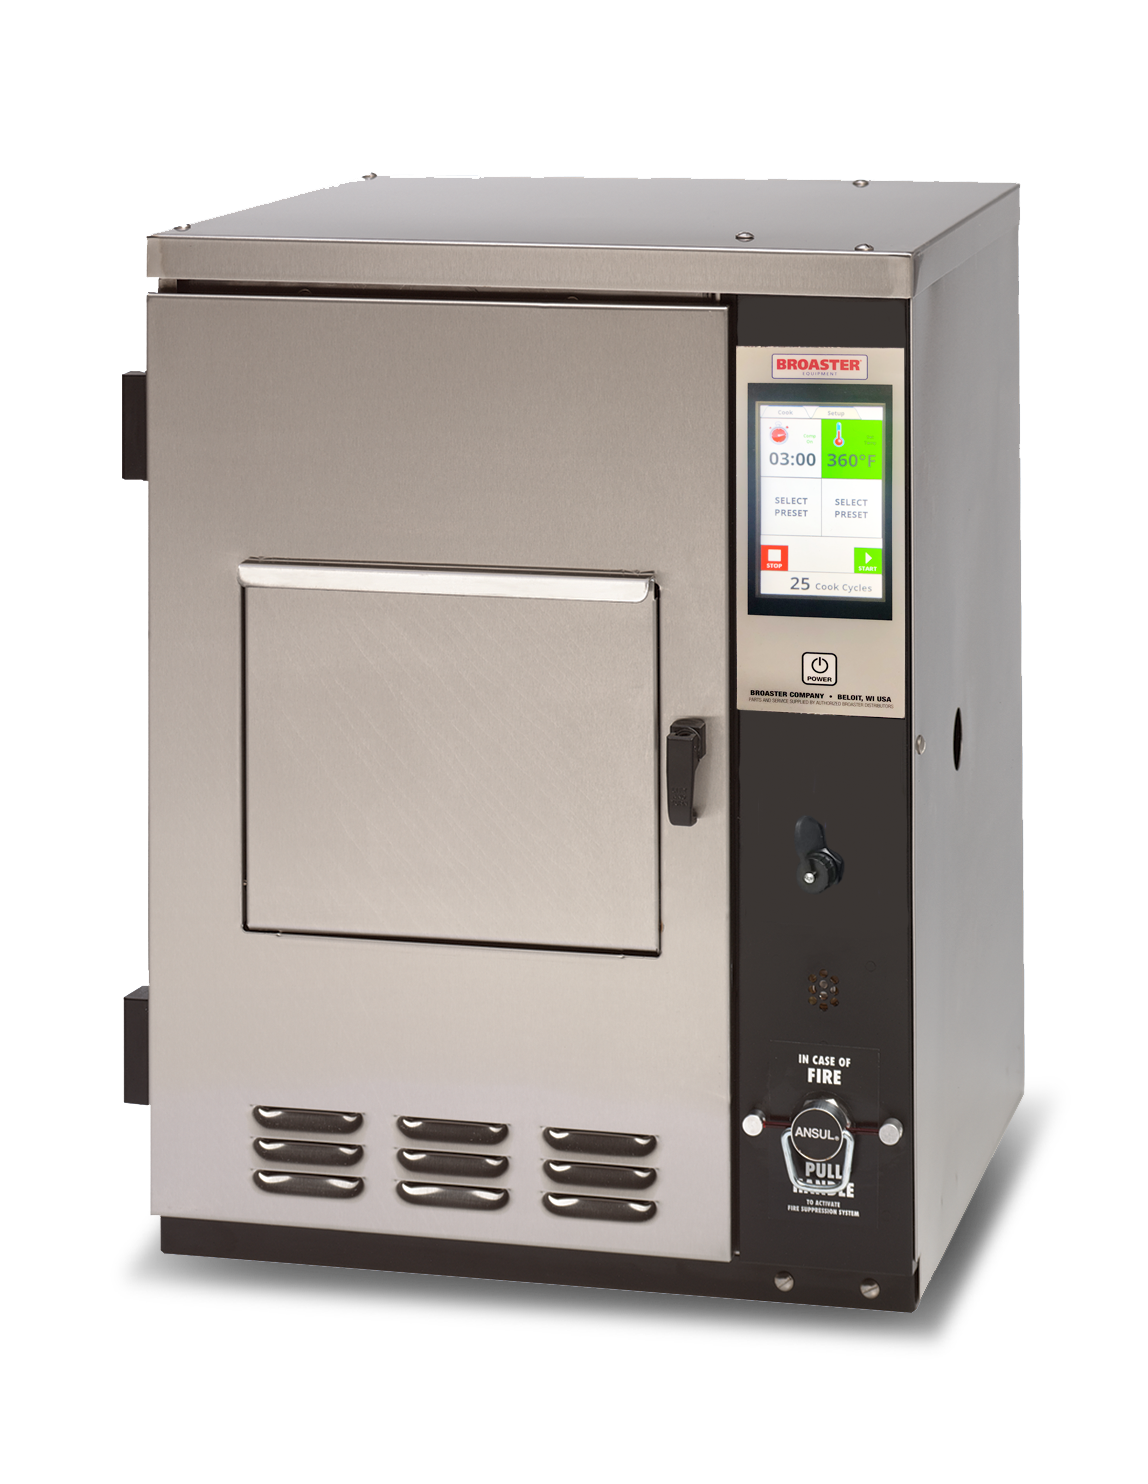 Ventless fryer with smart touch from Broaster